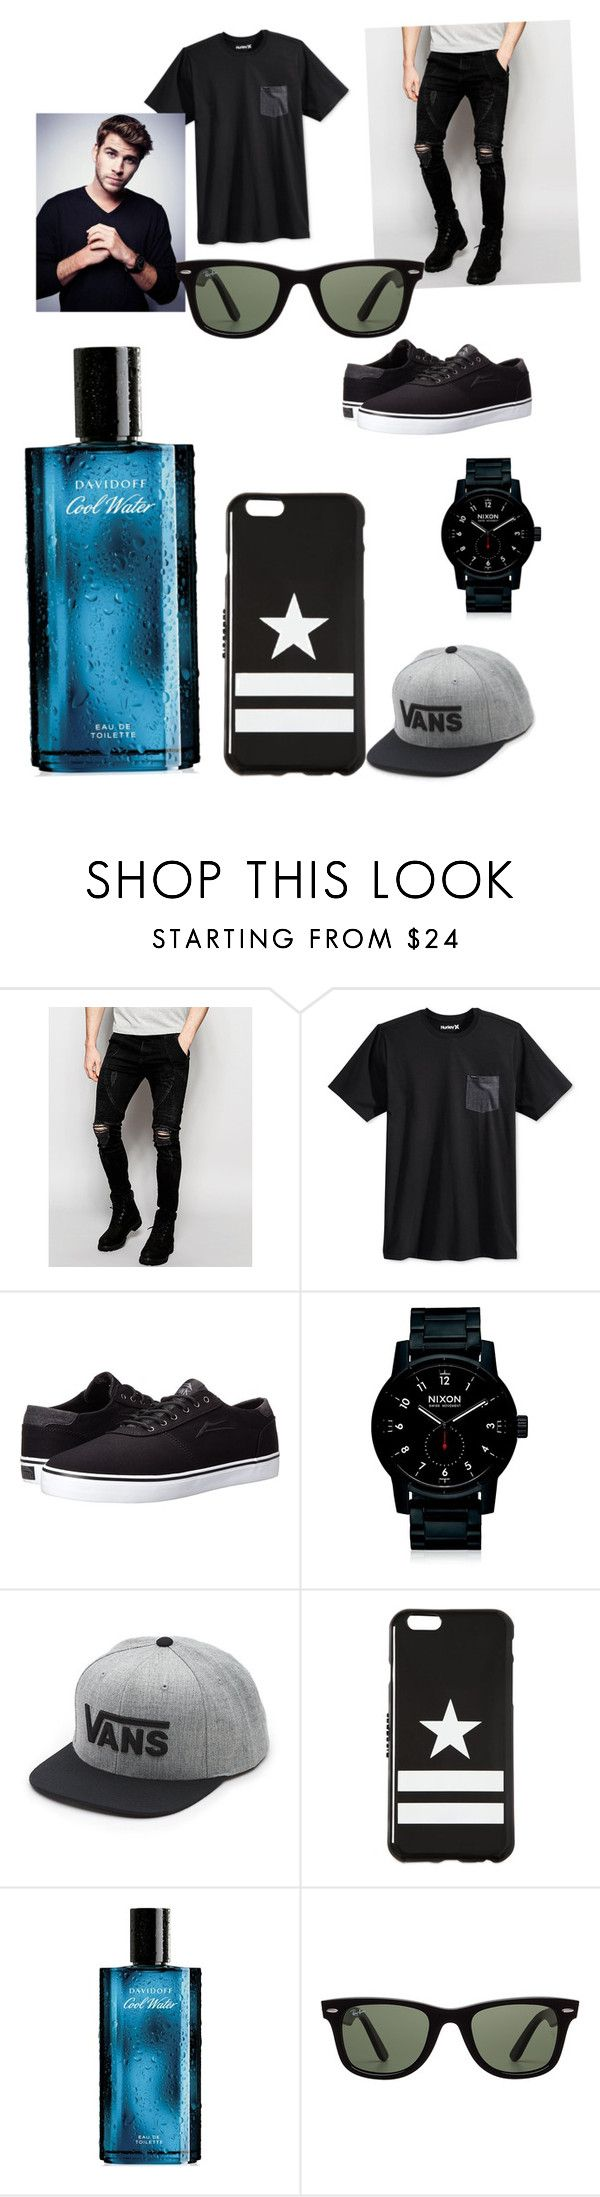 """•Ben Fire•"" by benhemmings on Polyvore featuring Sik Silk, Hurley, Lakai, Nixon, Vans, Givenchy, Davidoff, Ray-Ban, men's fashion and menswear"